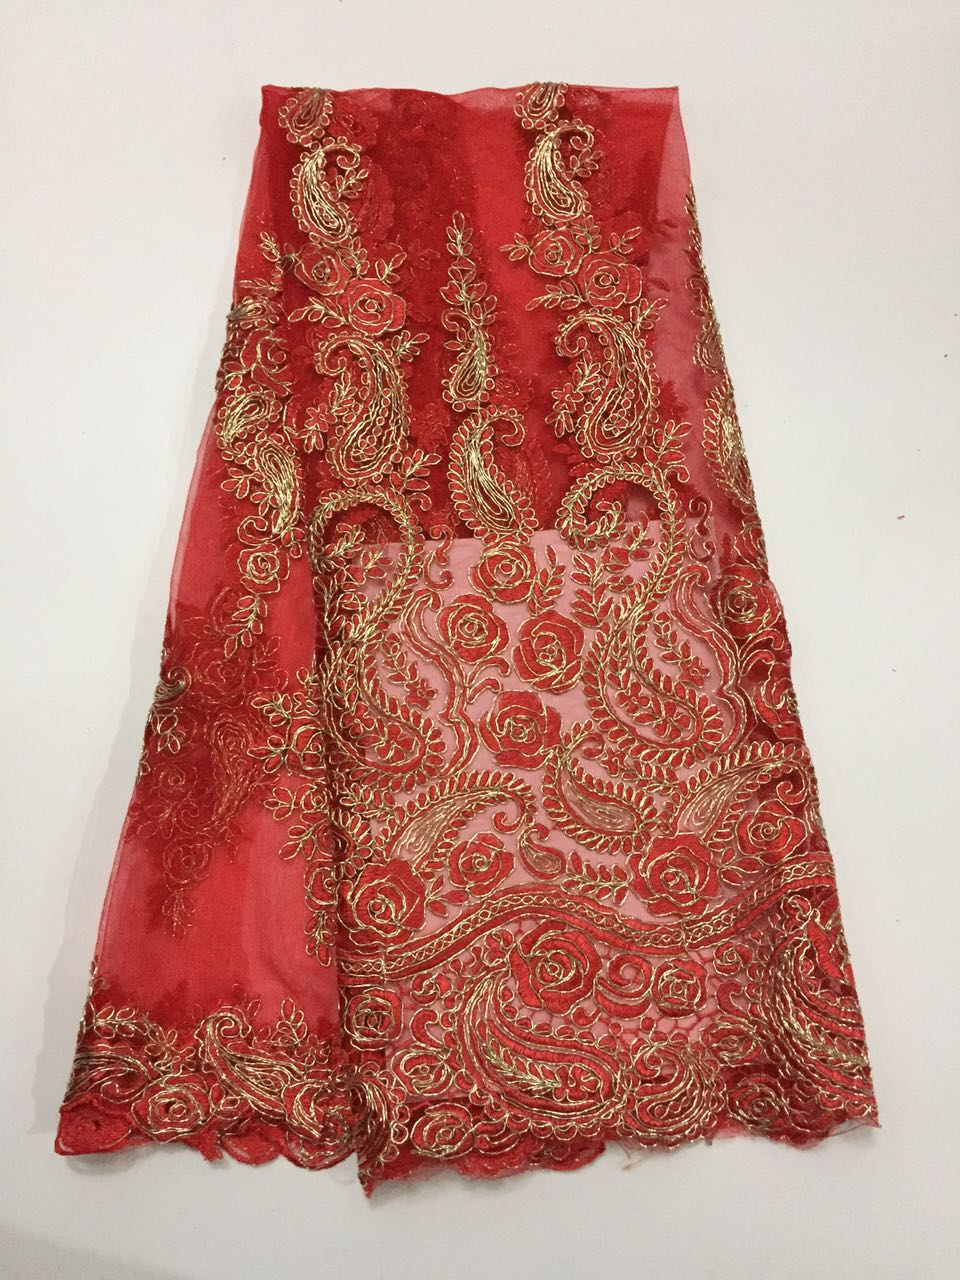 (QF905c-1)Gold thread design roses lace fabric/African Tulle Lace fabric wedding dress nigeria net - Guangzhou Cherry Fabric Company store